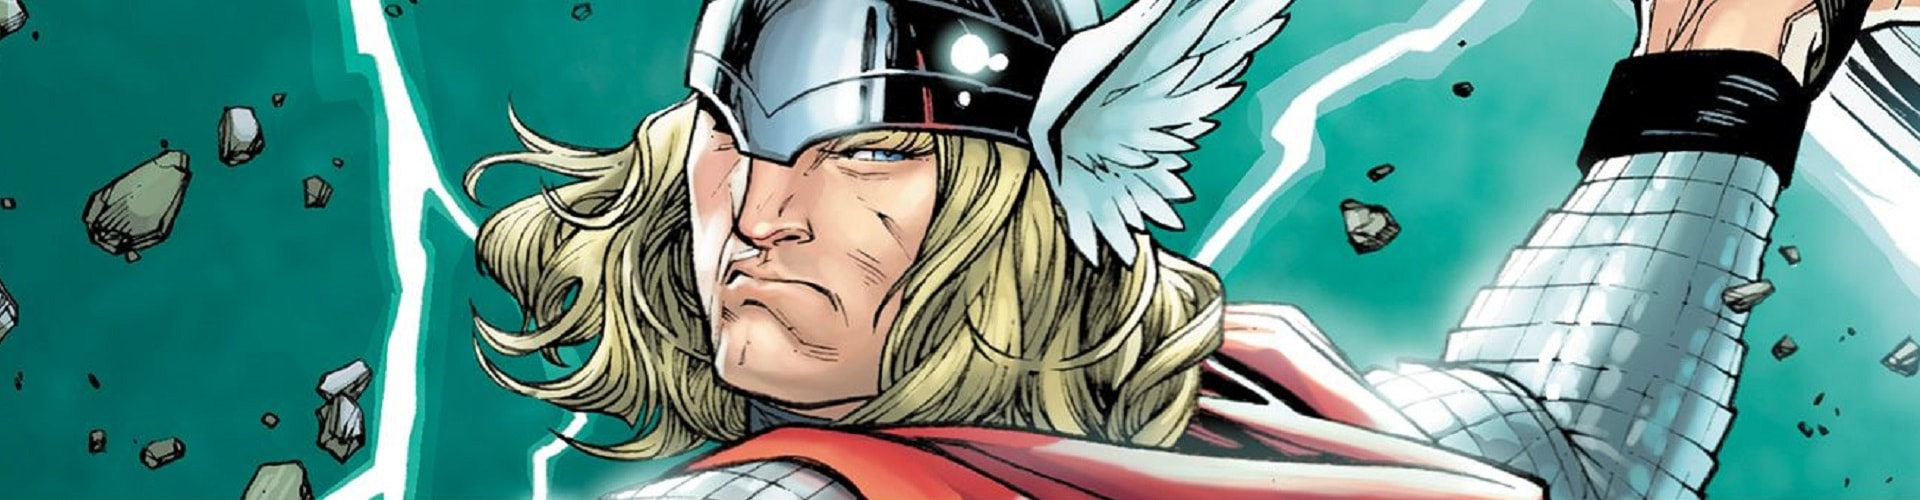 on sale this week: thor legacy